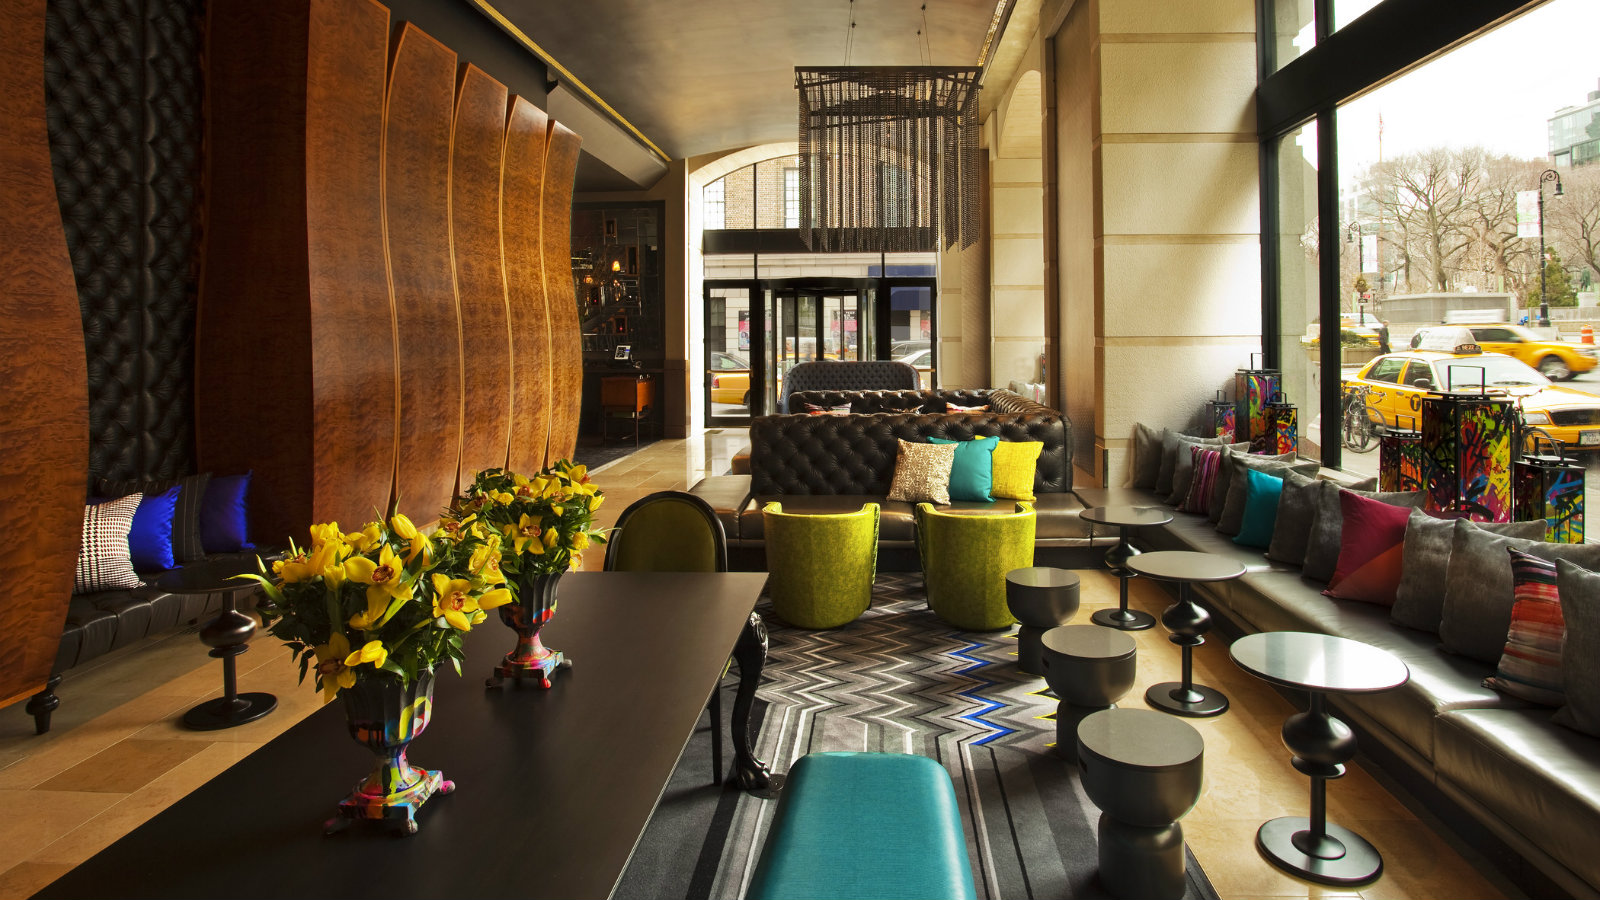 Wnewyork unionsquare thelivingroom abco peerless - The living room at the w union square ...